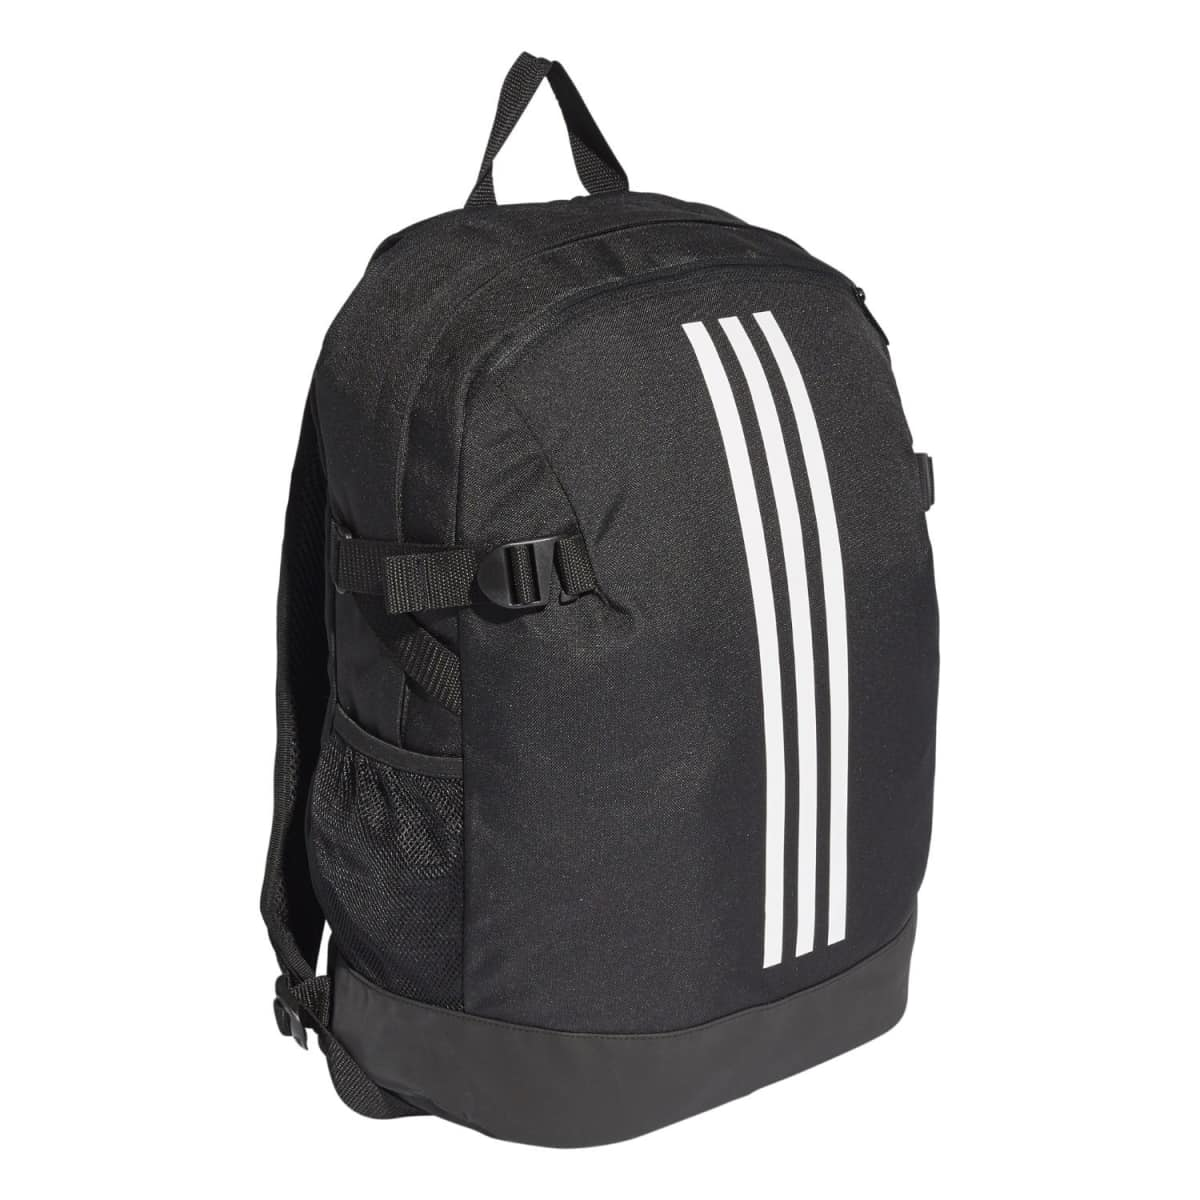 Accessories bags sportsmans warehouse jpg 1200x1200 Adidas rolling duffle  bag 9fe520153c